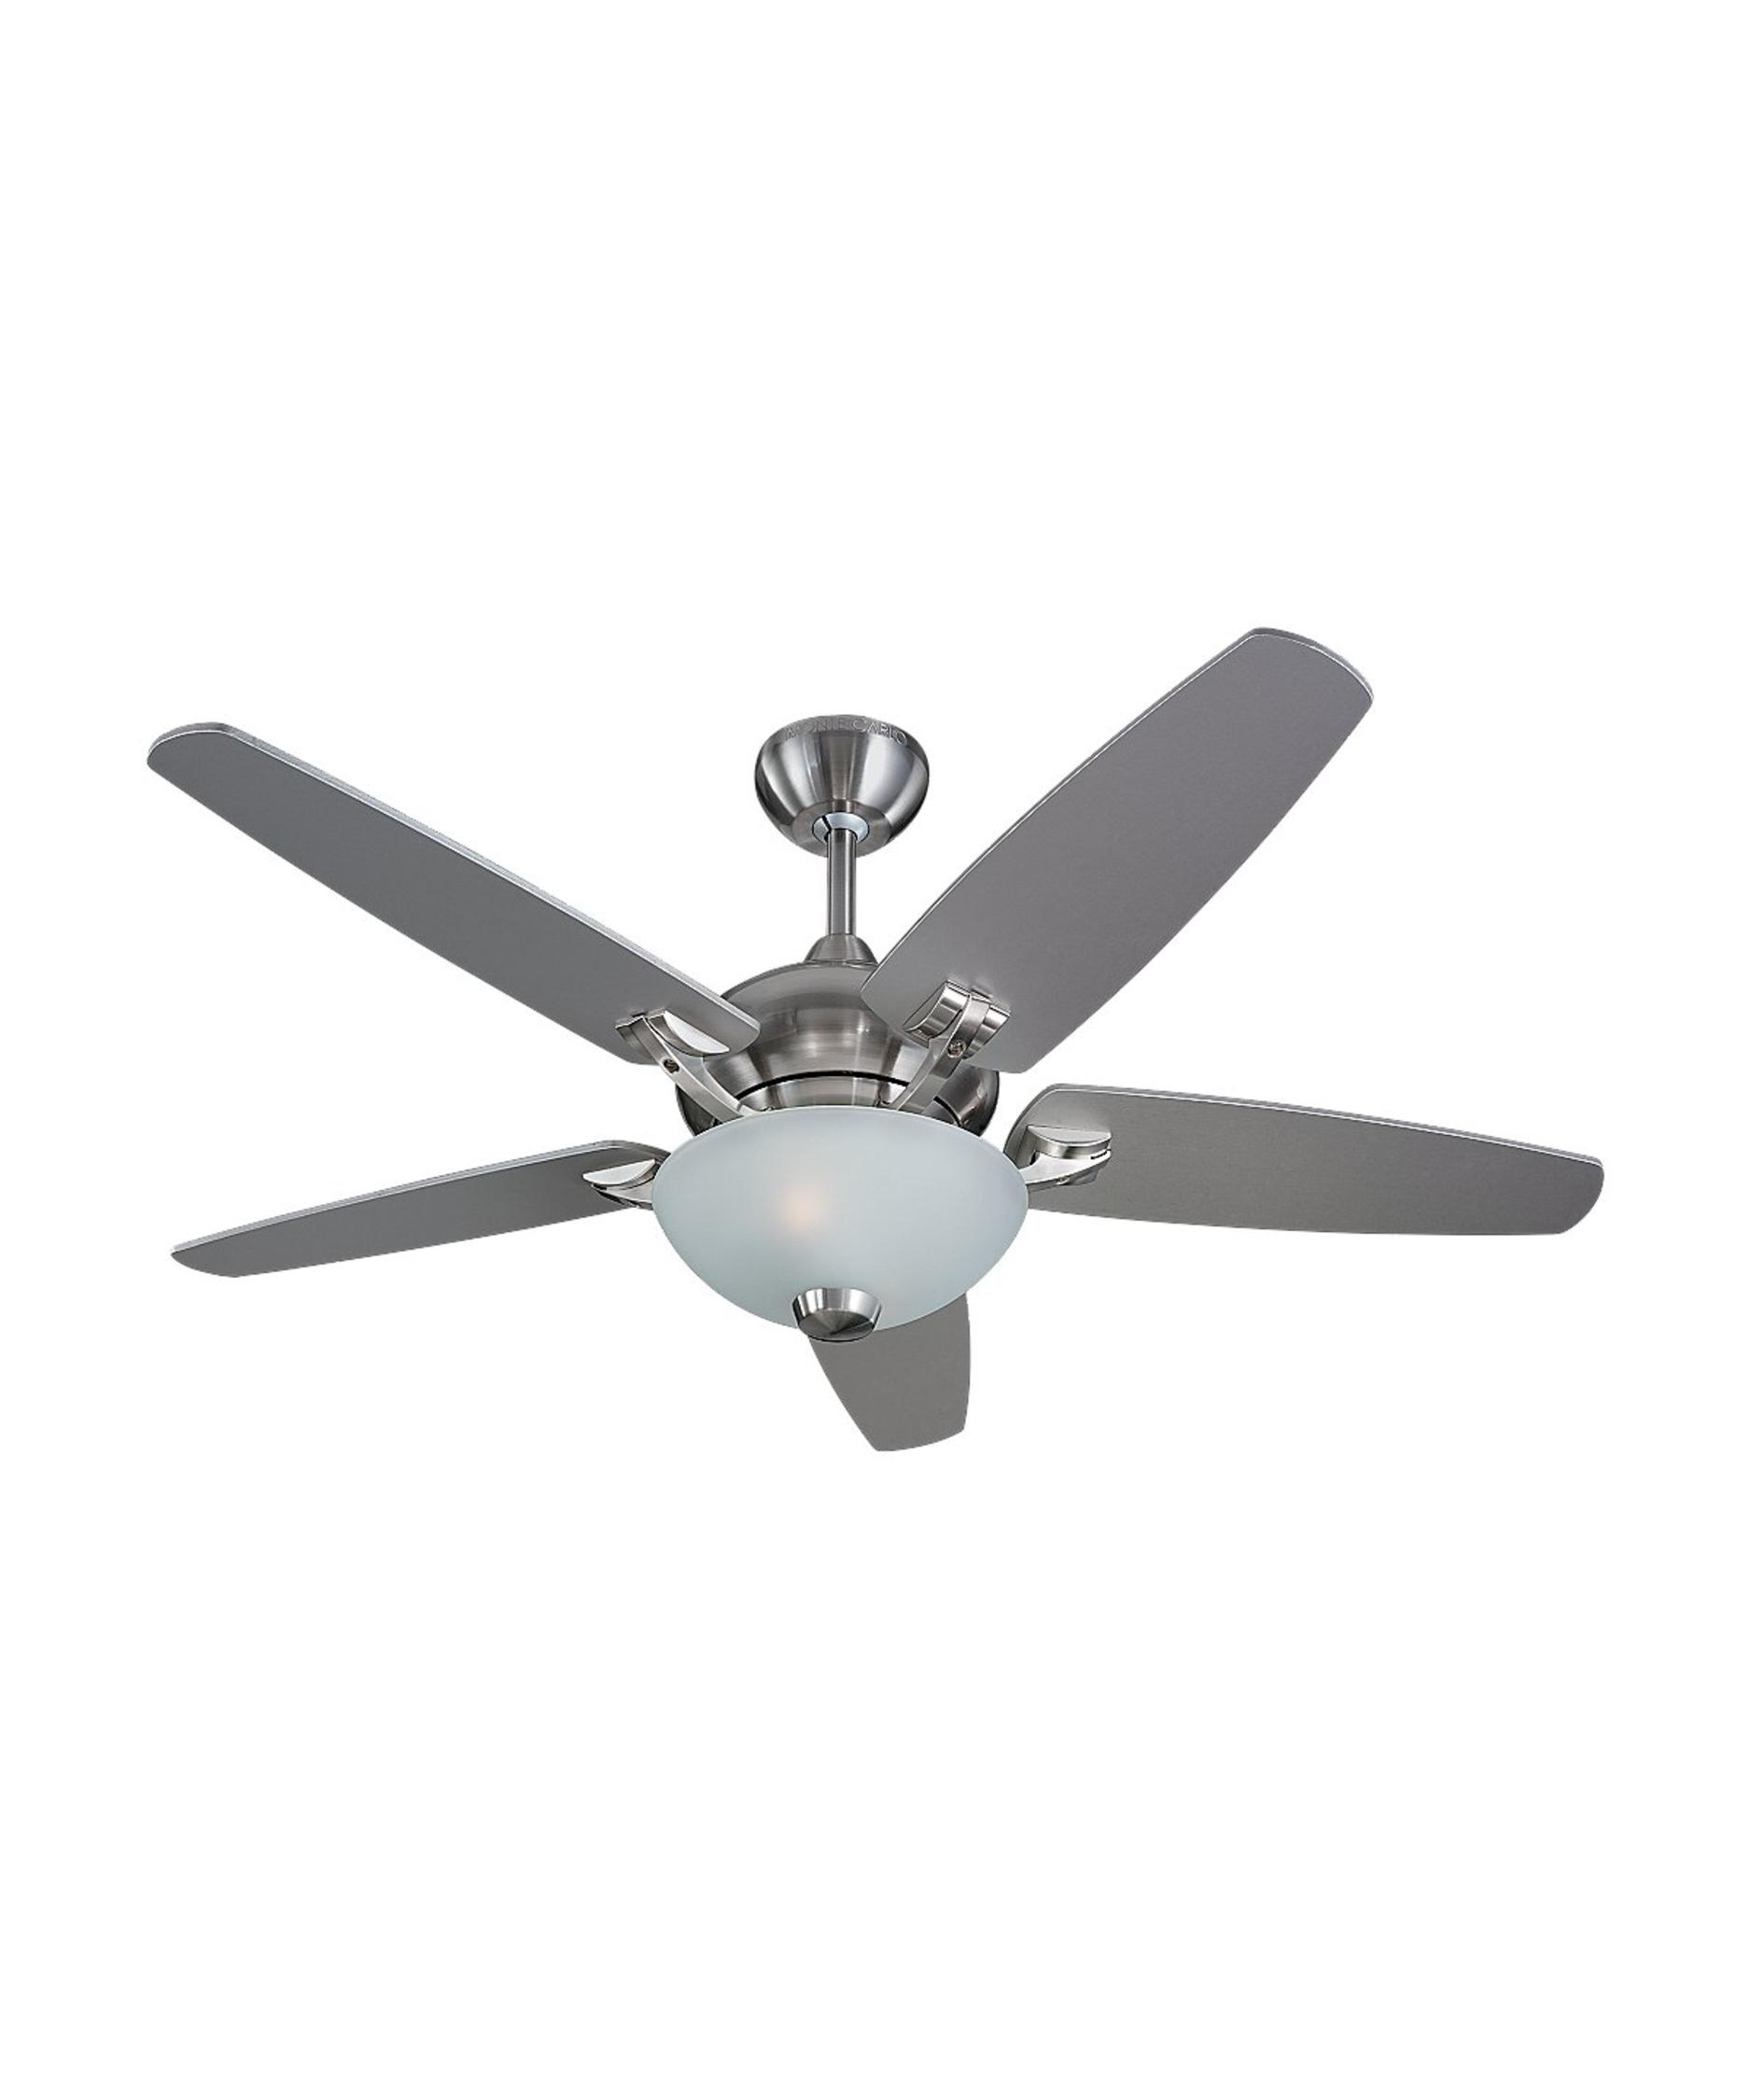 Murray Feiss Ceiling Fan Light Kit: Monte Carlo 5VSR44 Versio II 44 Inch Ceiling Fan With